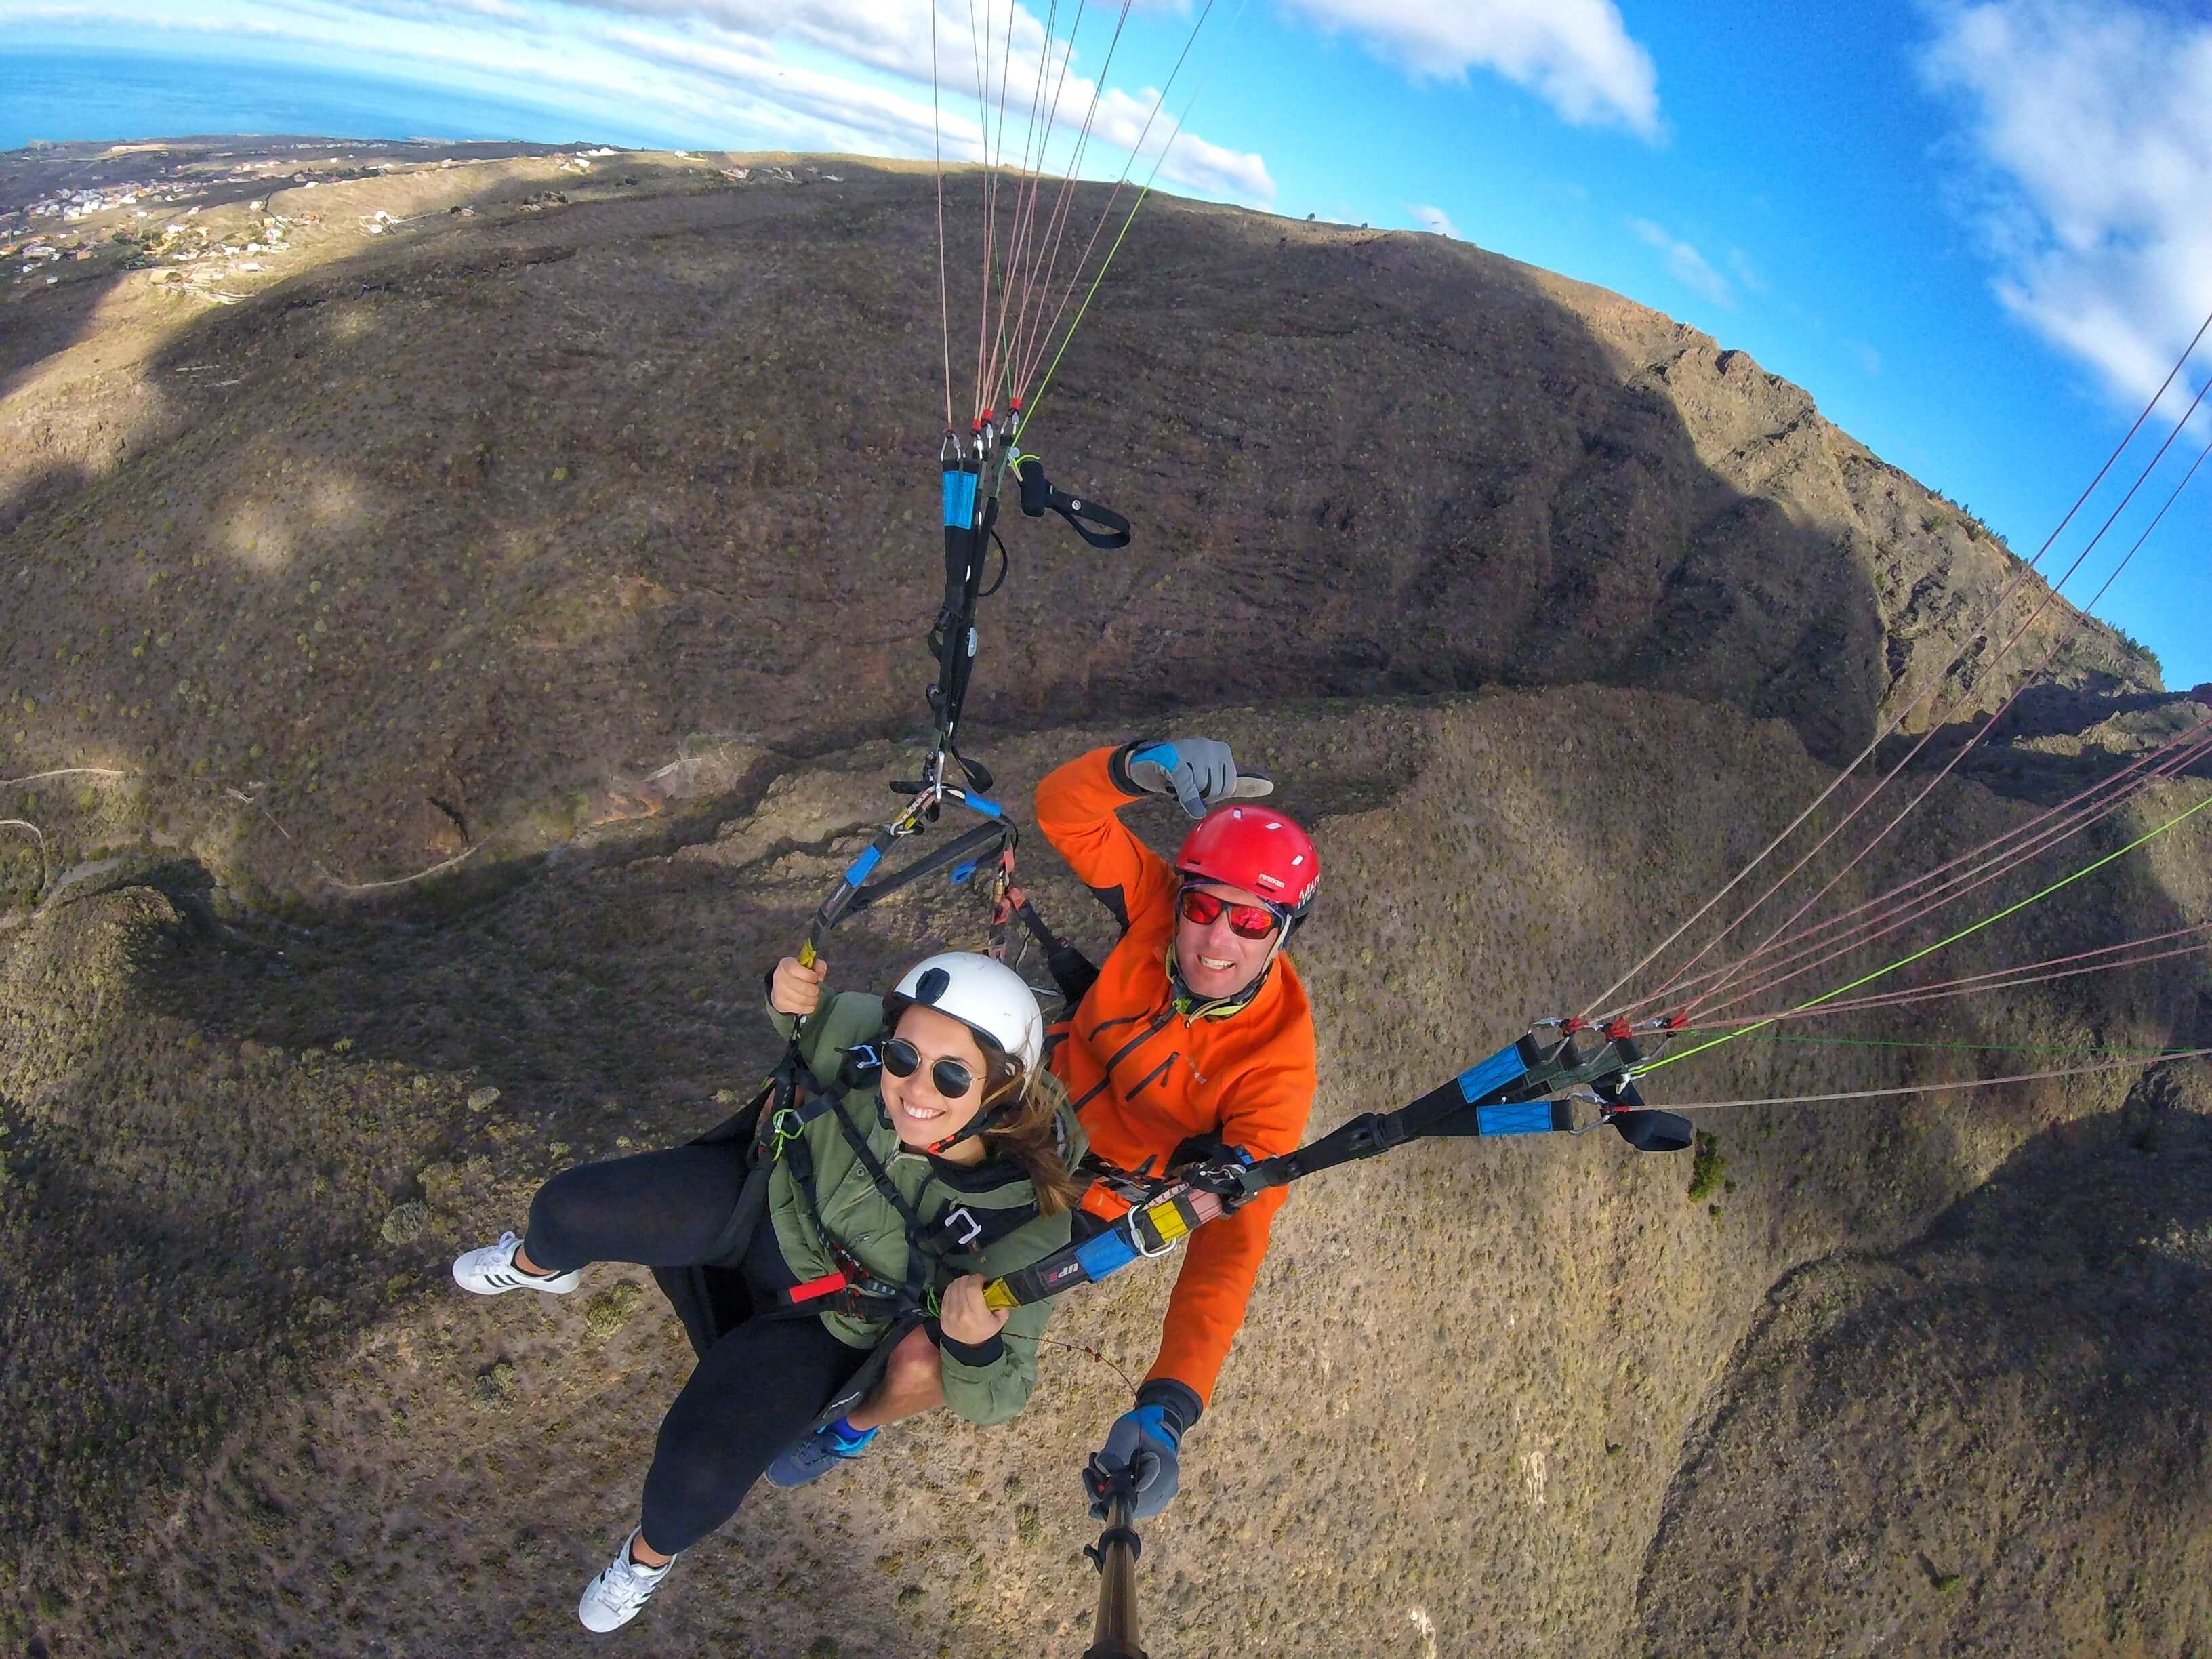 flying in paragliding with professional pilot in tenerife